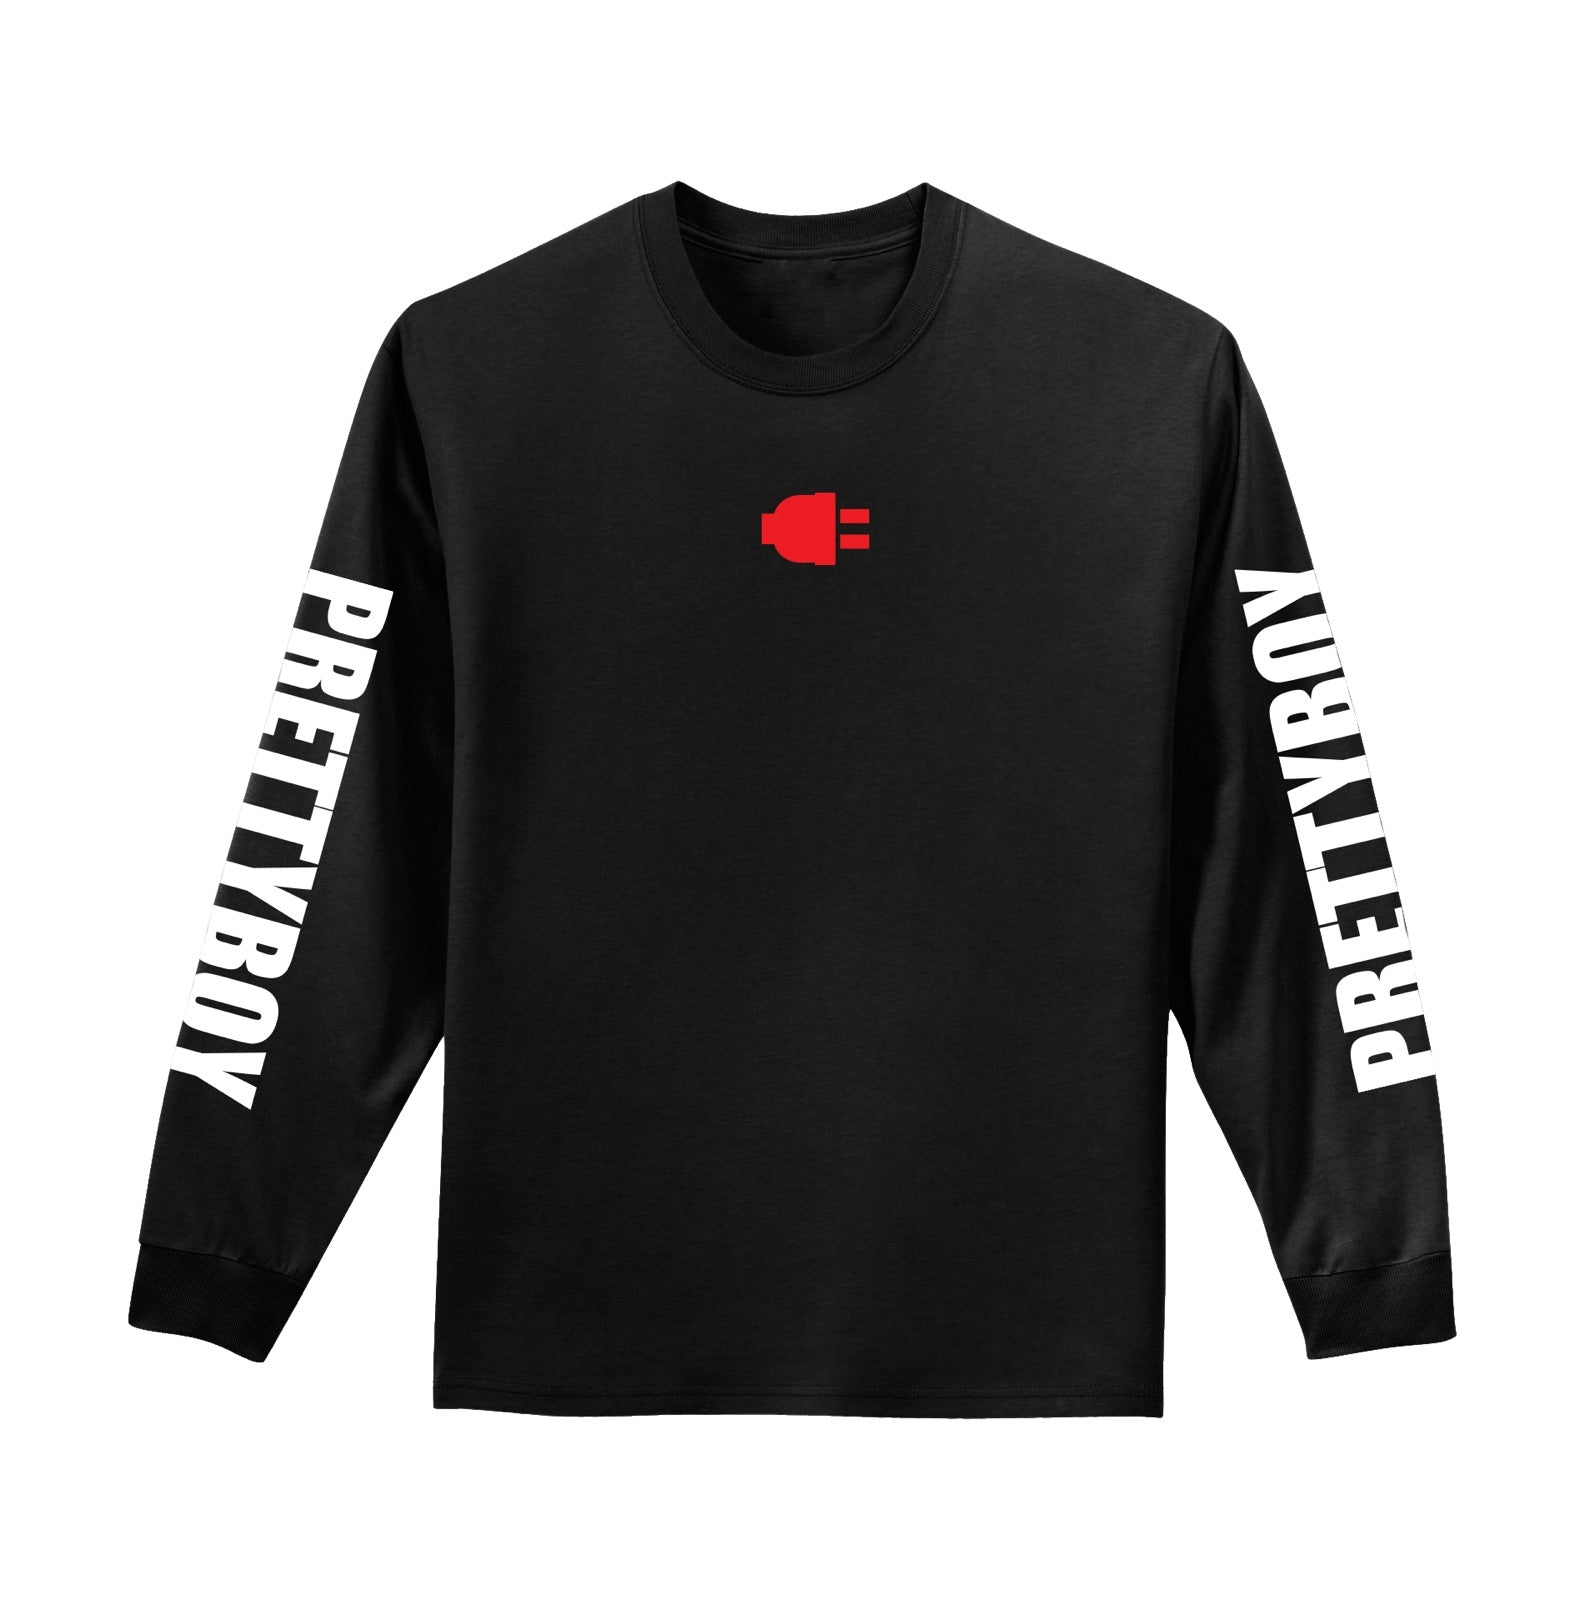 Black Plug Long Sleeve (PREORDER)